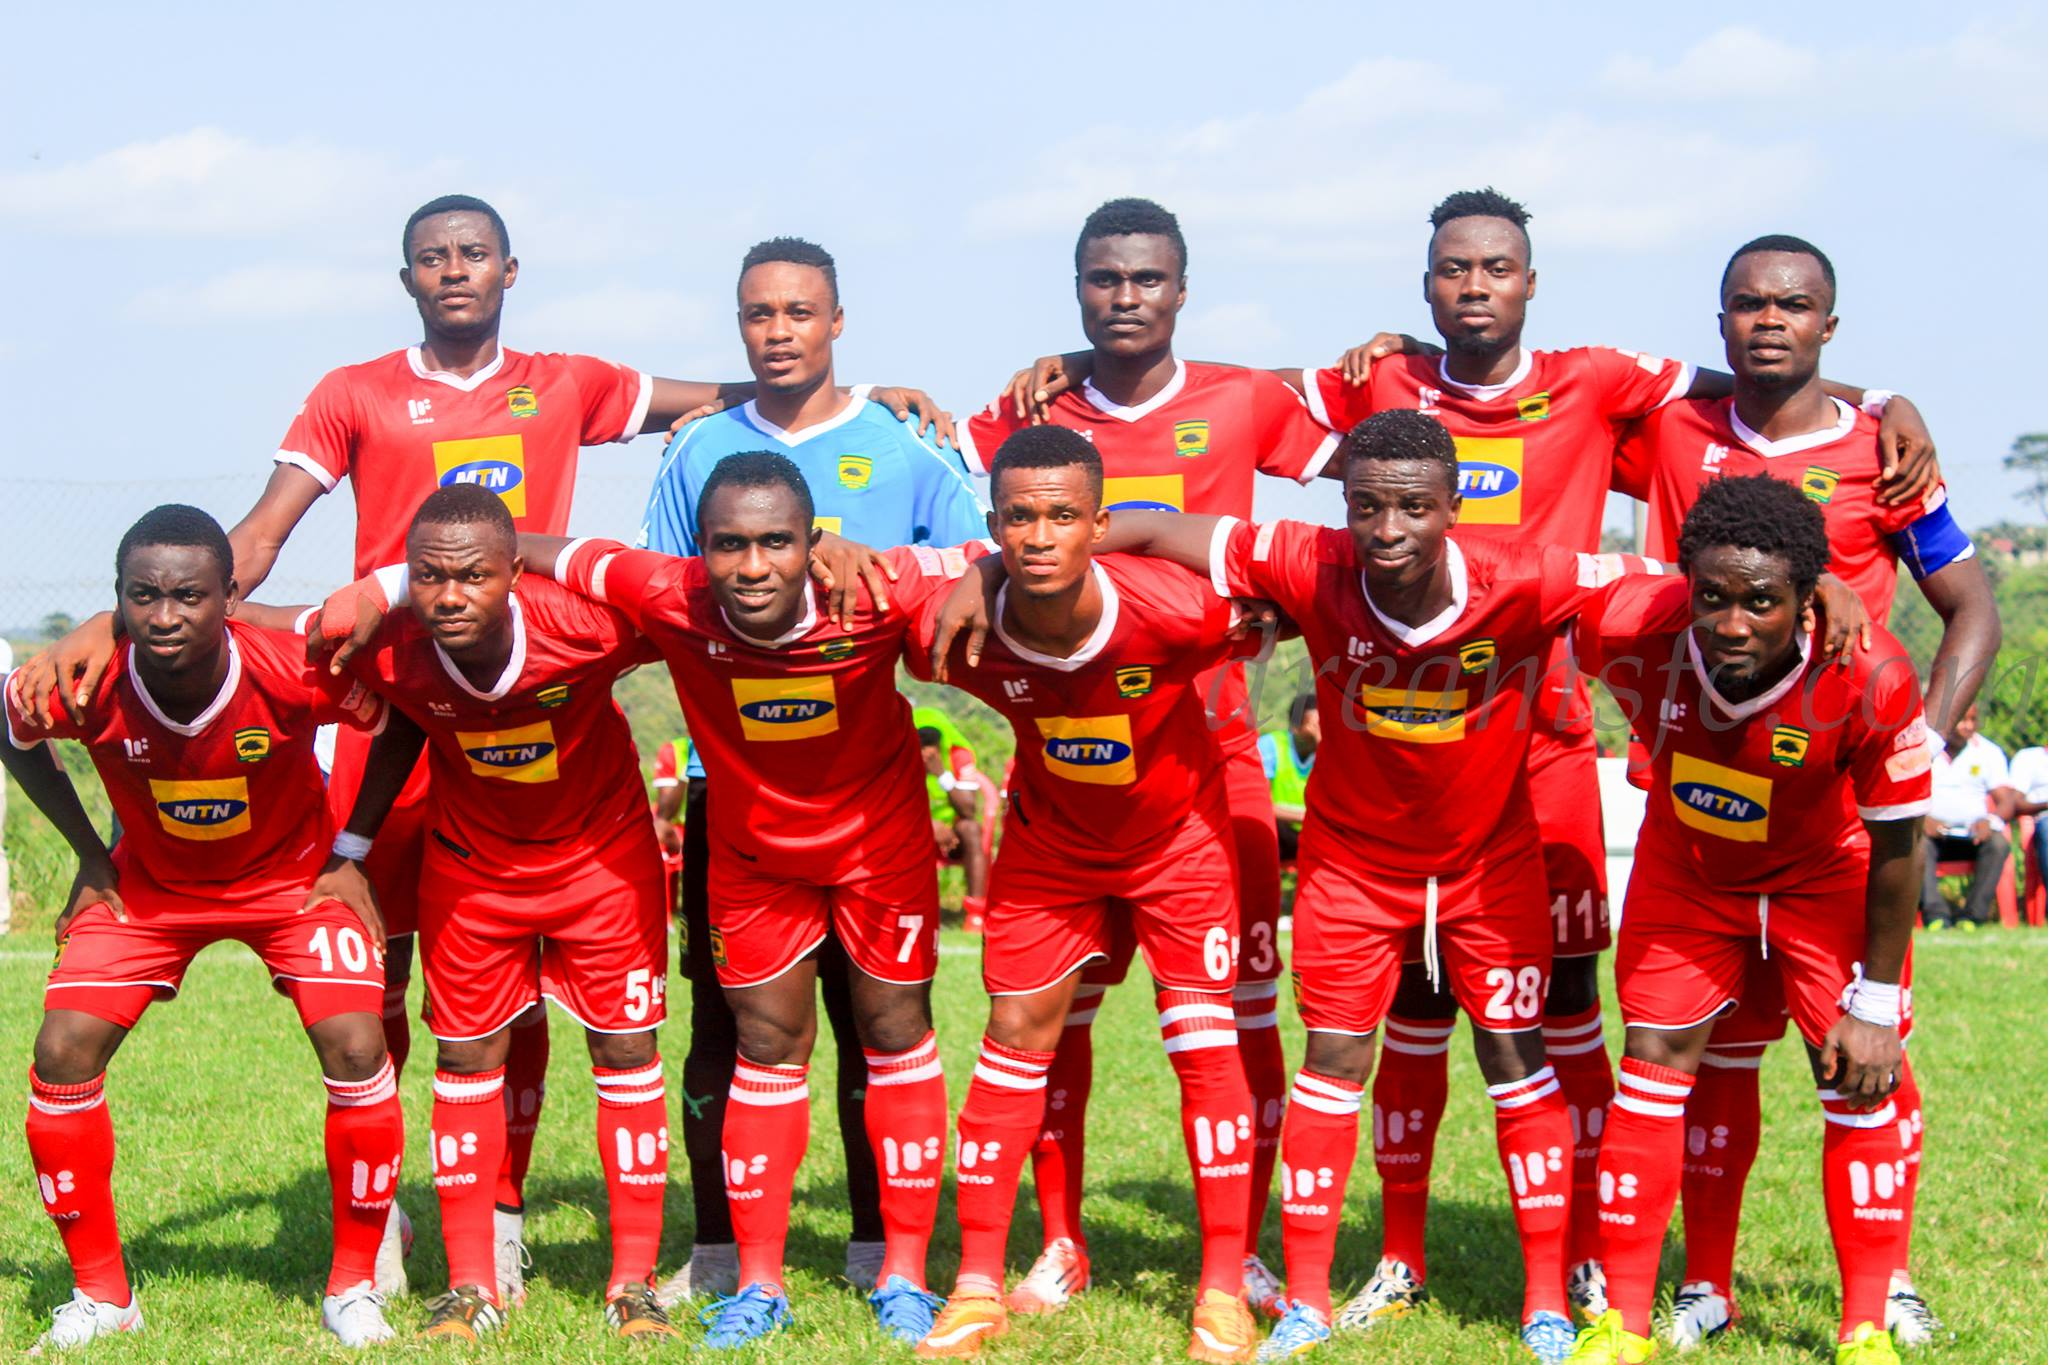 Ghana Premier League Preview: Asante Kotoko vs Hearts of Oak- Tantalizing derby clash on the bill in Kumasi